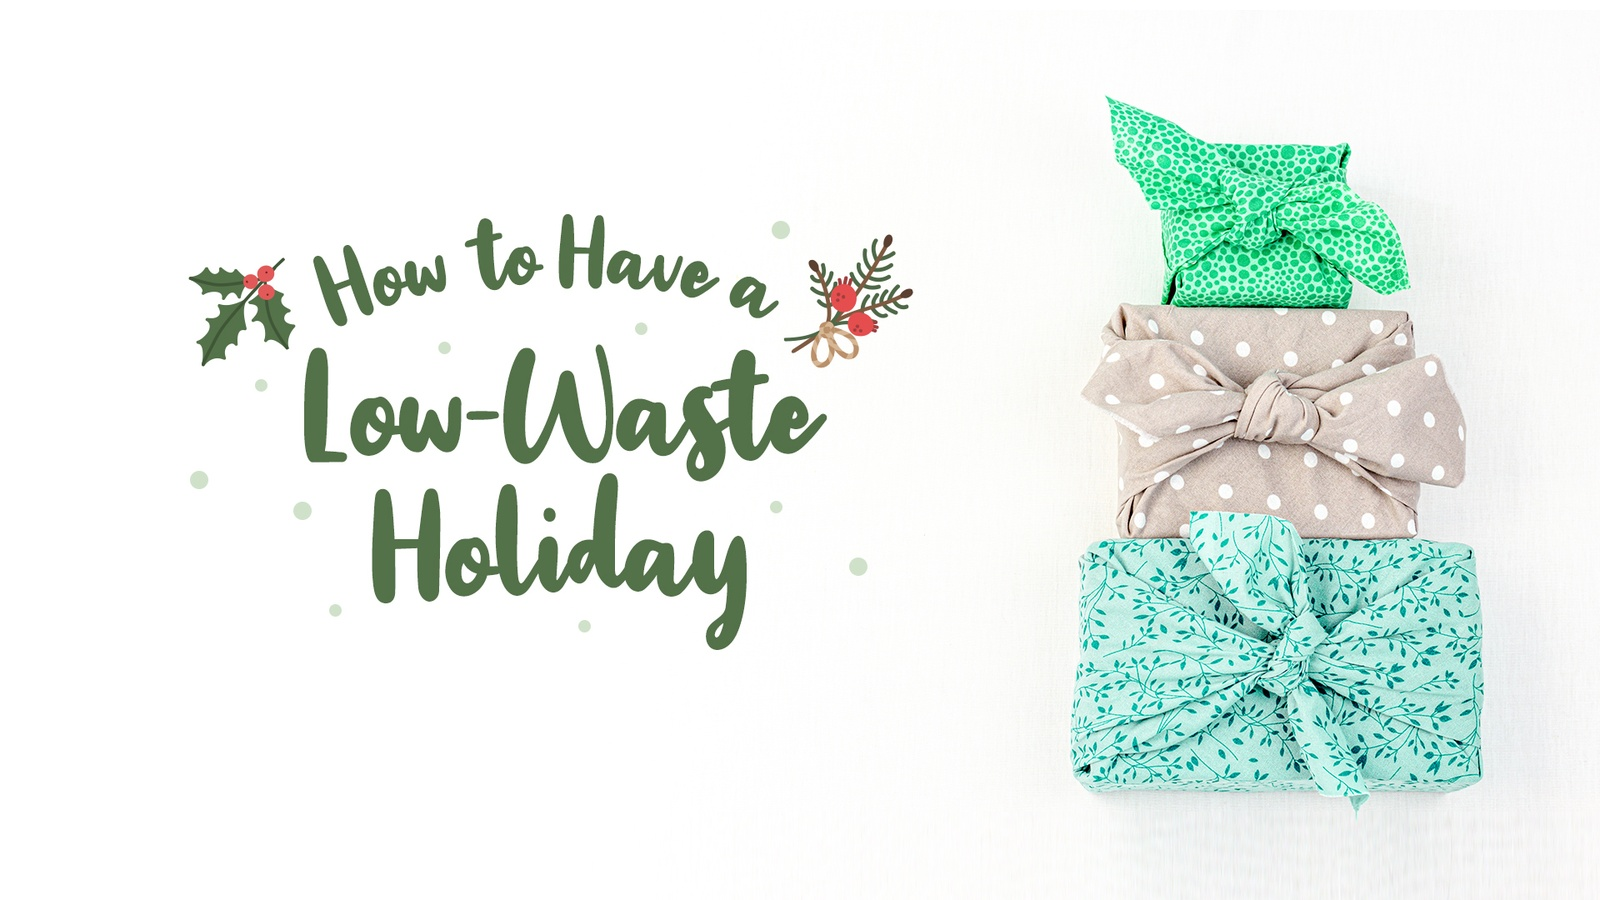 How to Have a Low-Waste Holiday